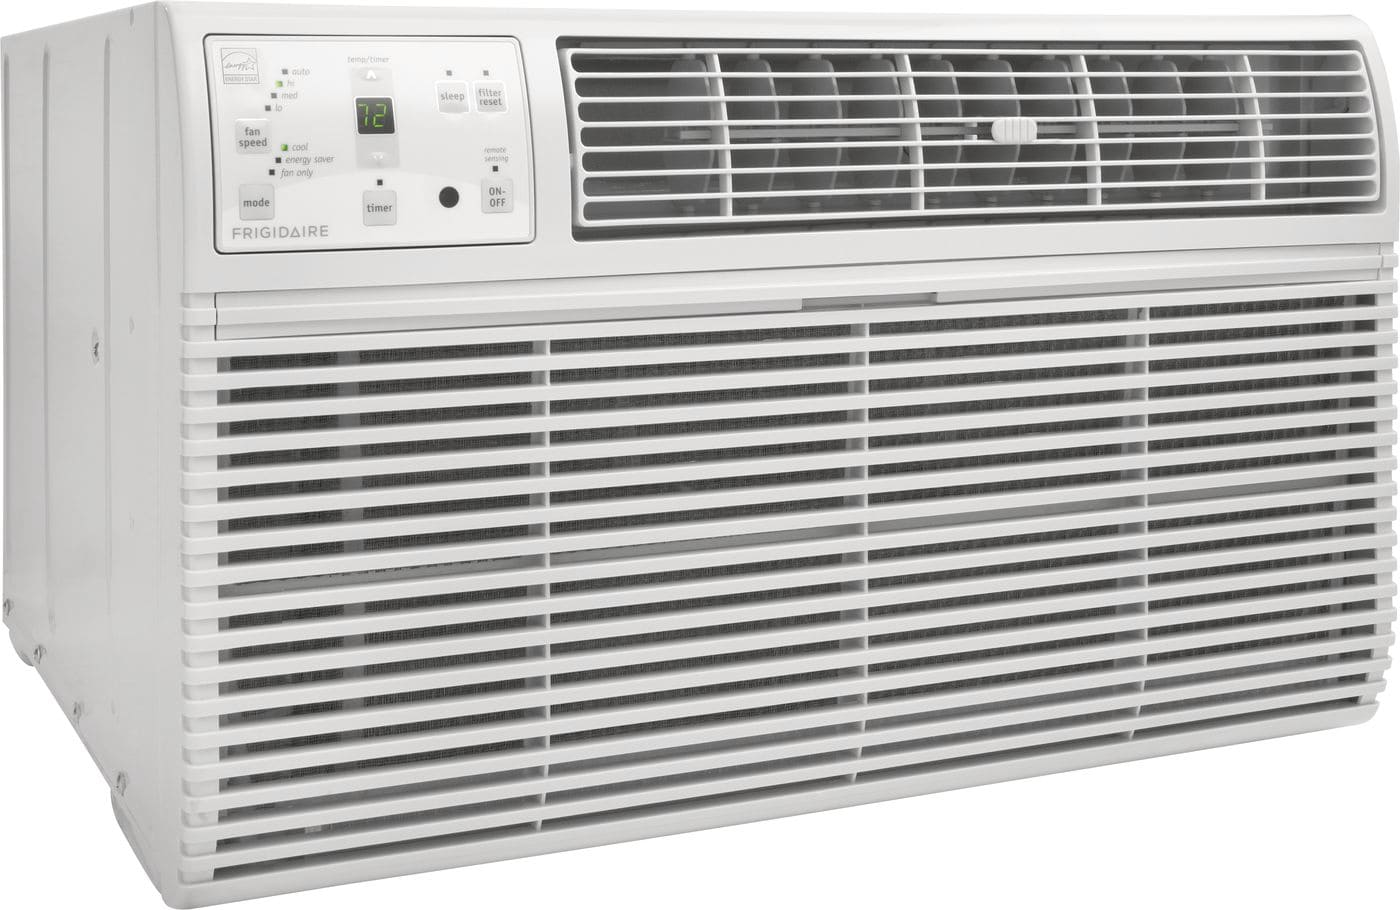 Model: FFTA1033S2 | Frigidaire 10,000 BTU Built-In Room Air Conditioner